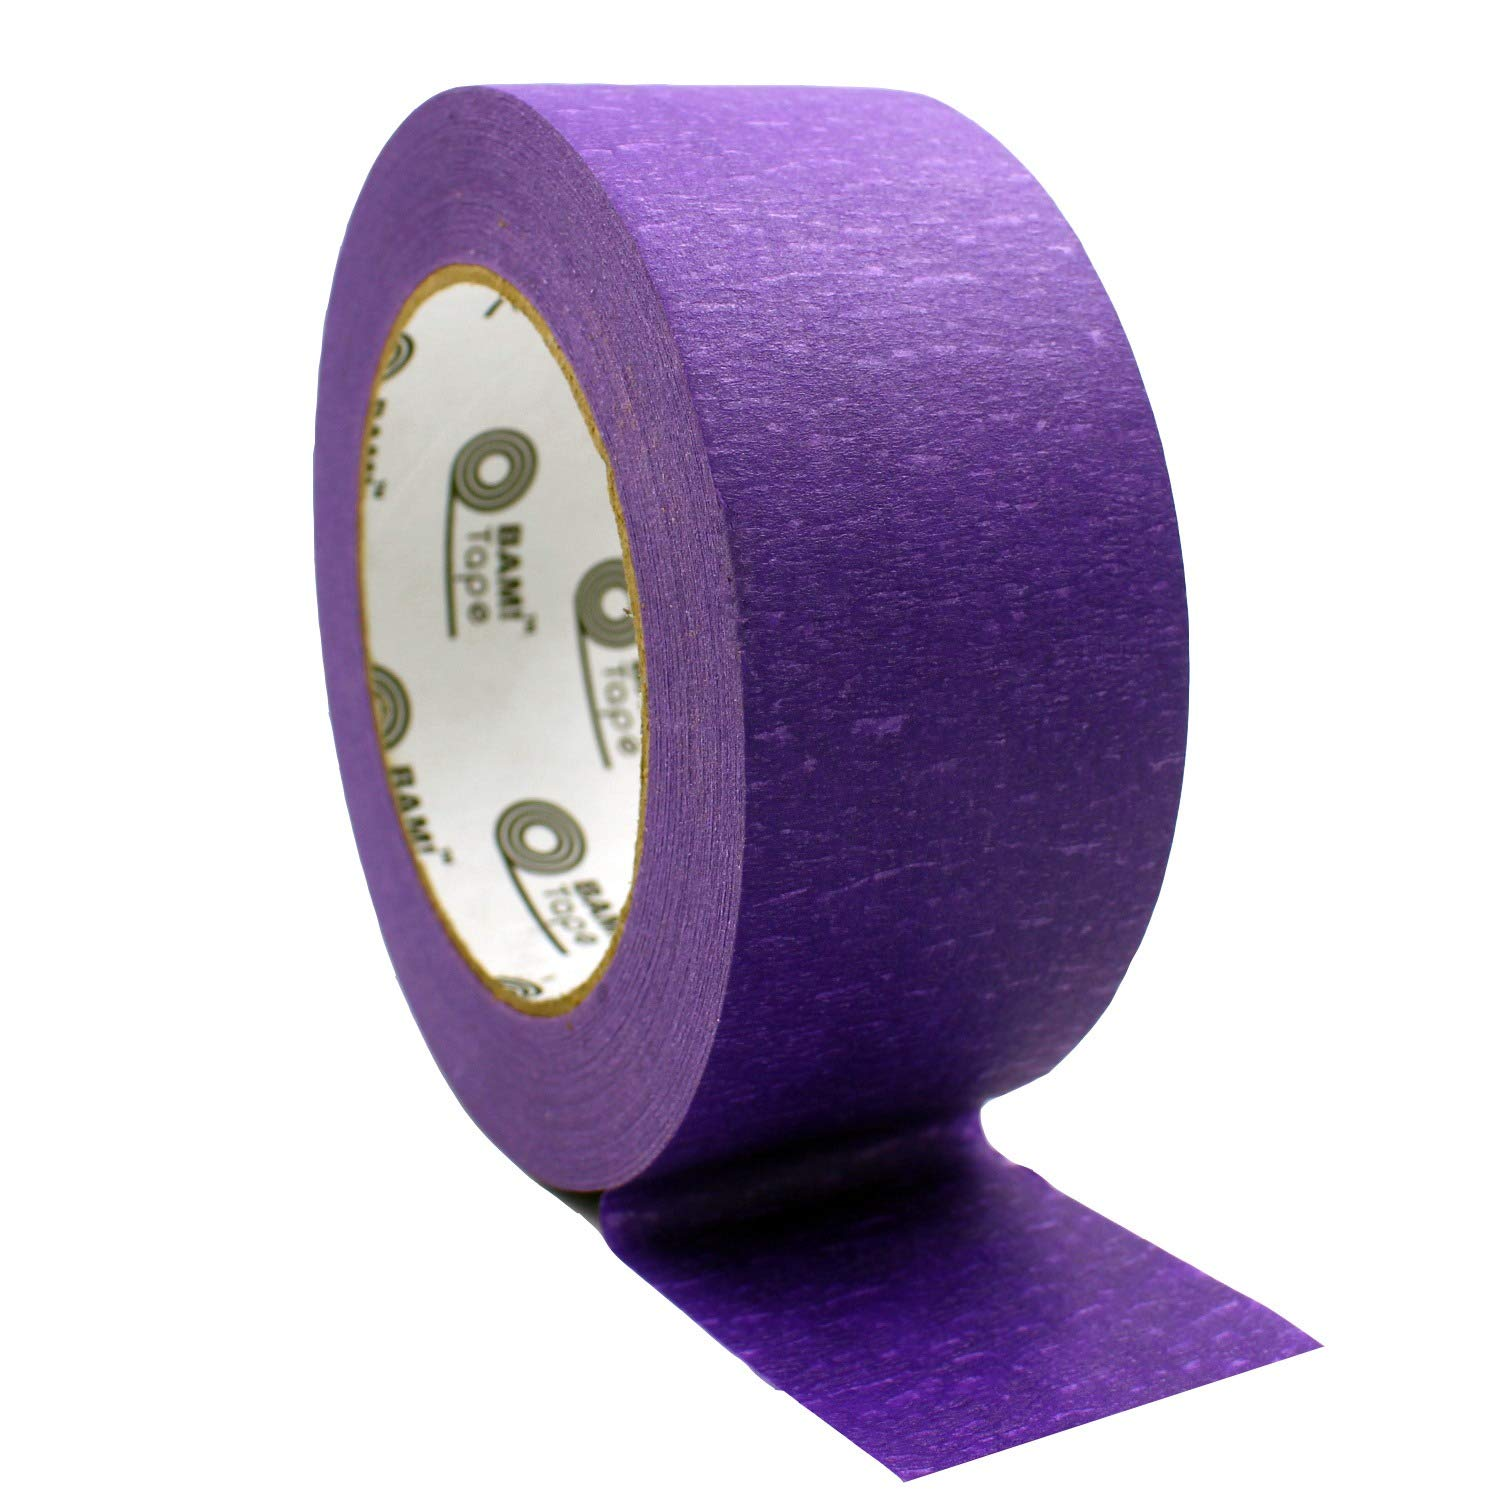 Purple Colored Masking Tape by BAM! Tape   Arts and Crafts Tape   STEM Preschool Learning   Kids Art Supplies and Crafting Kit   Painter Tape   1 Large Roll 60 Yards by 2 Inch Wide